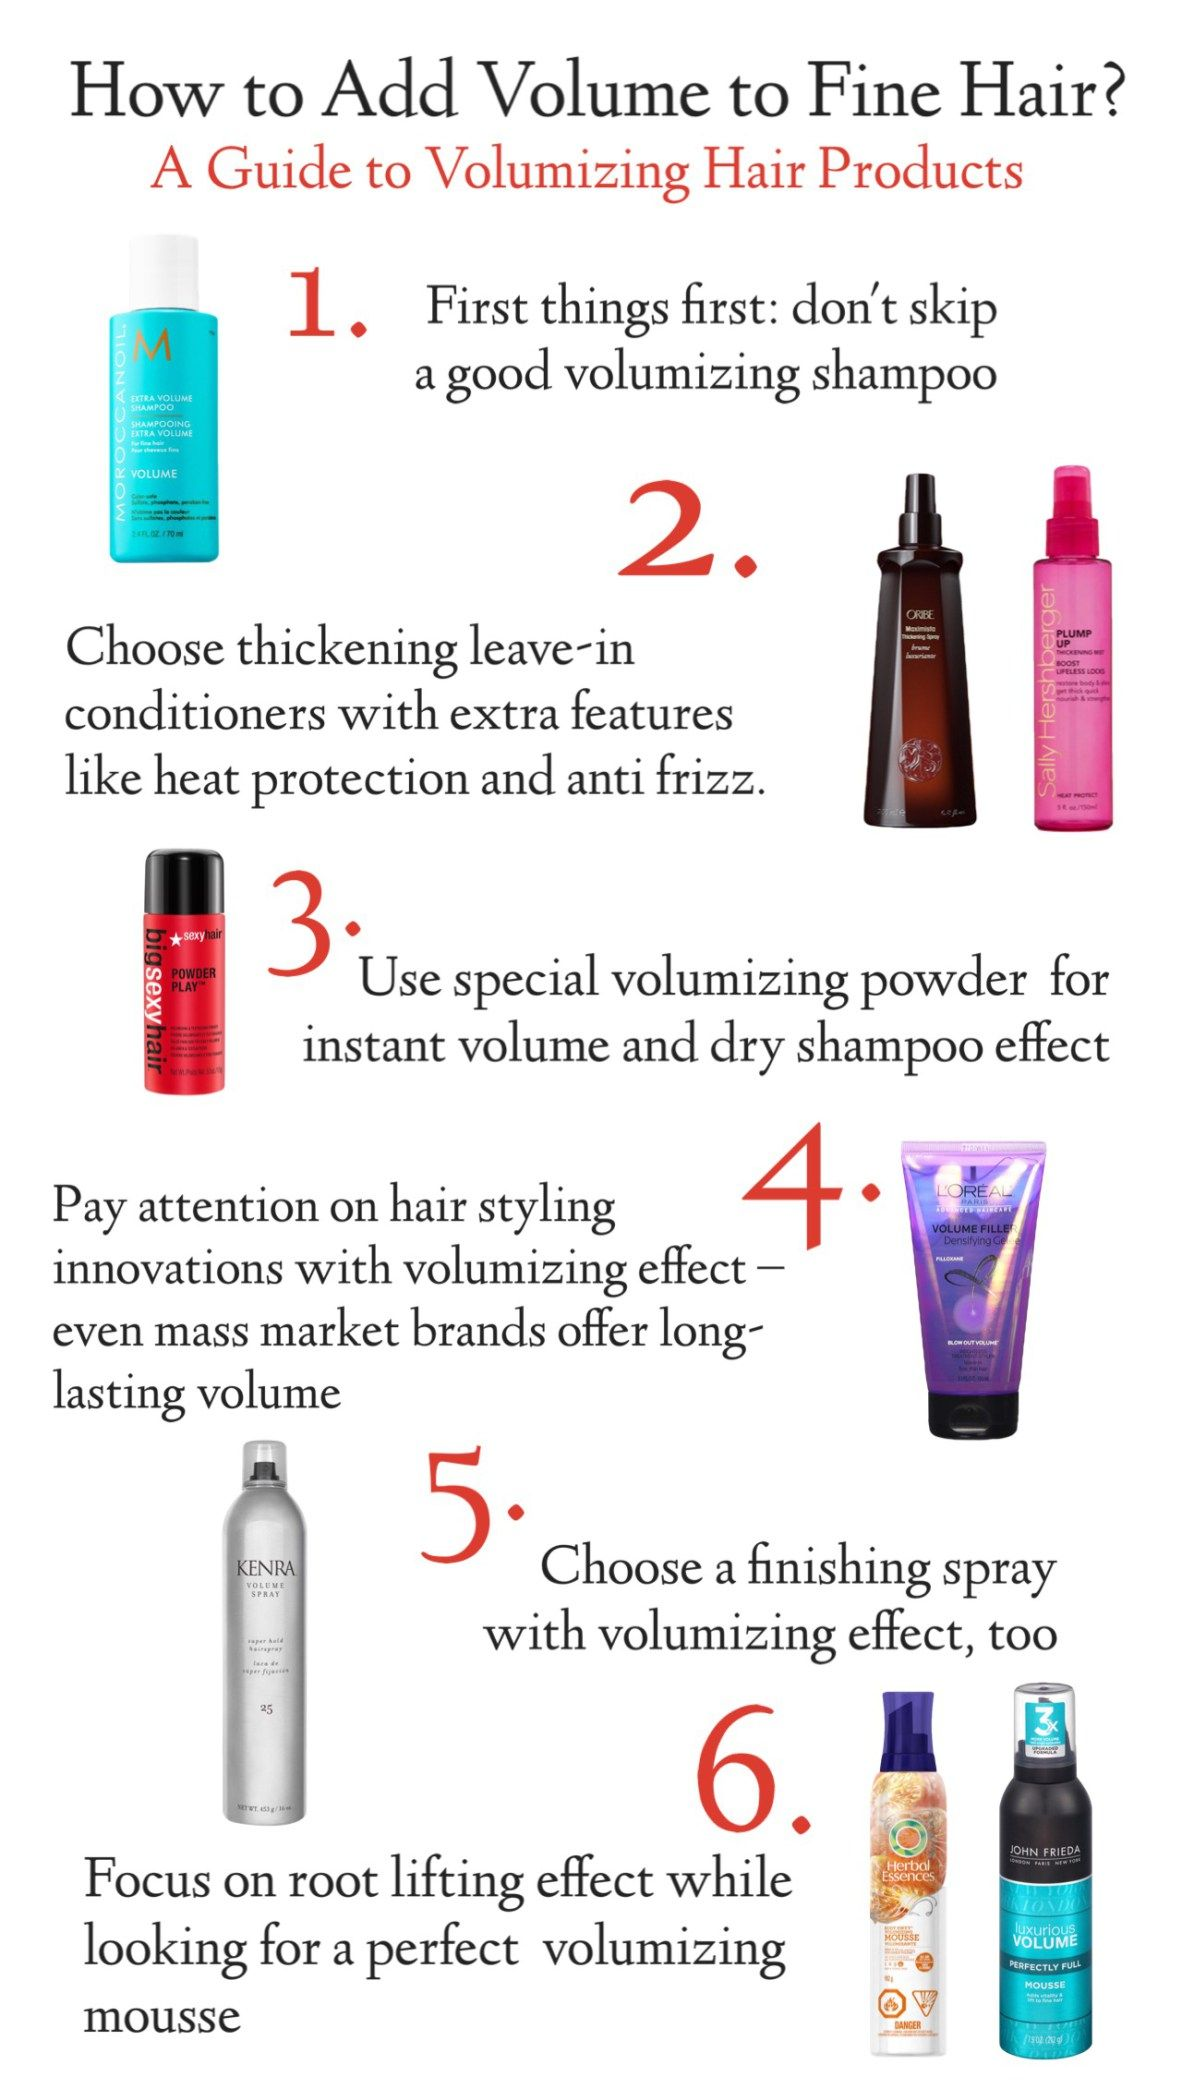 Top 7 Volumizing Hair Products for Fine Hair (With images